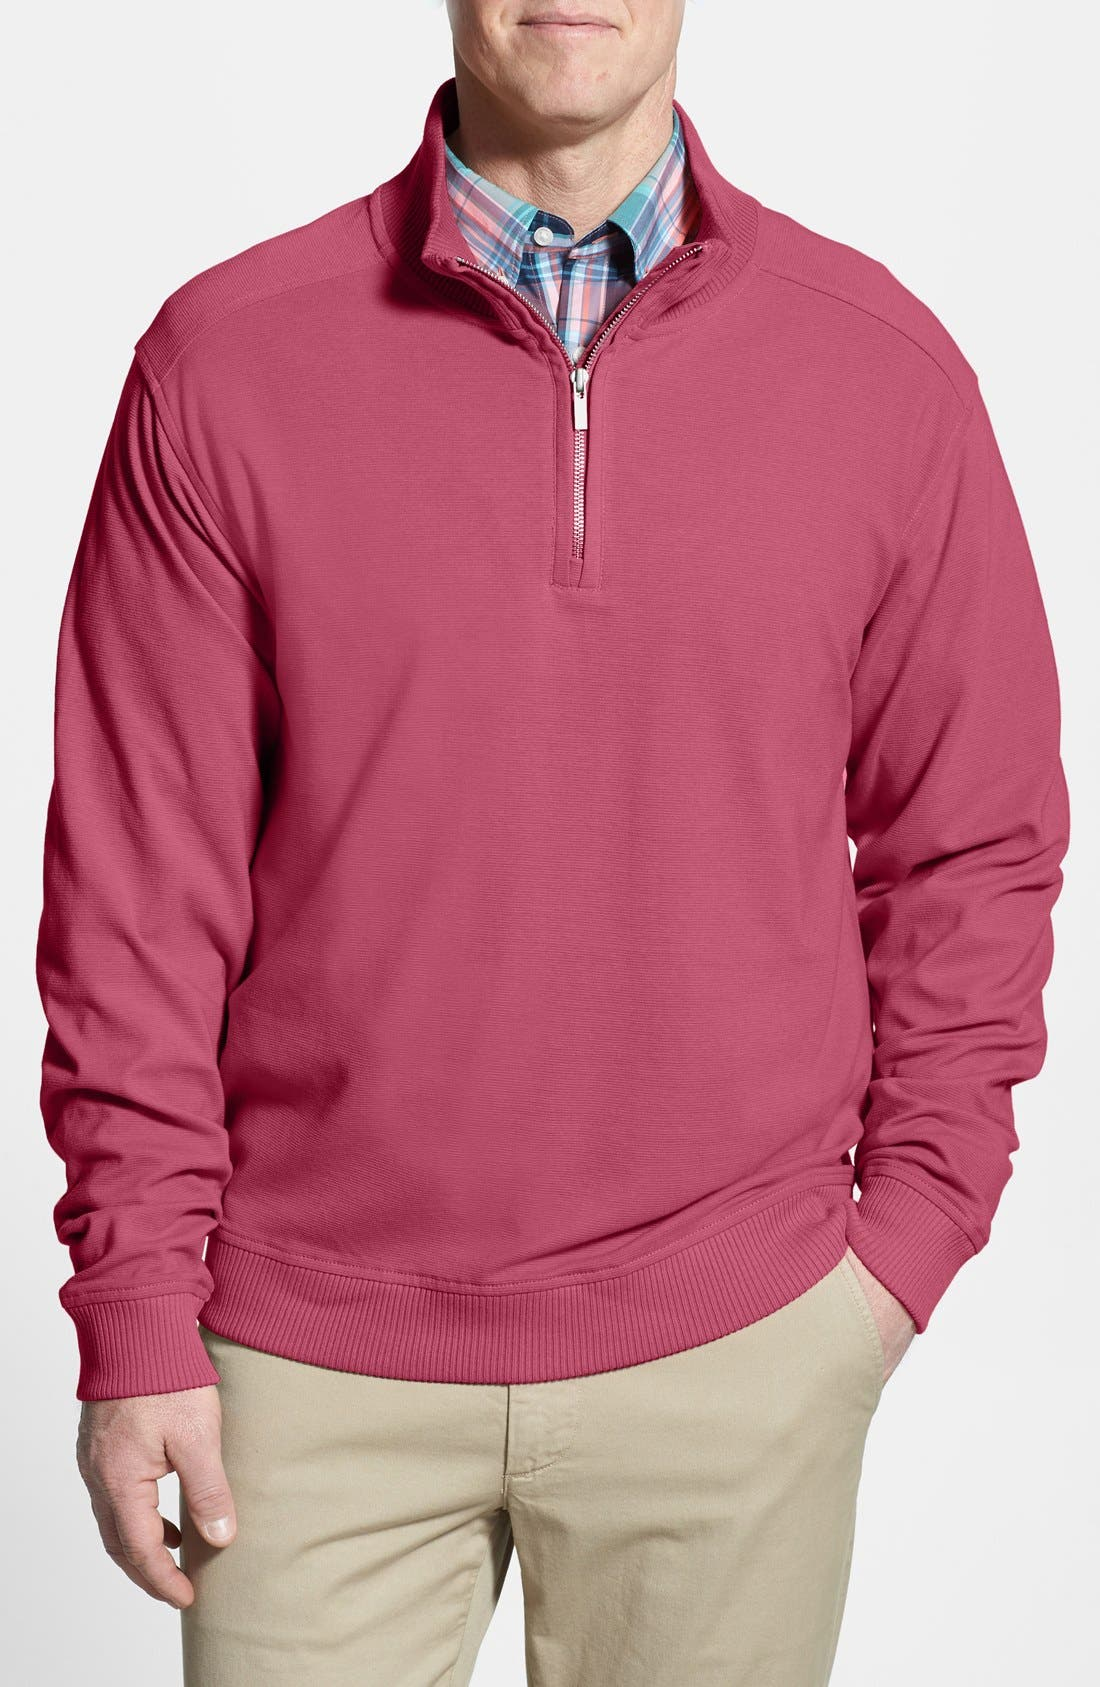 Alternate Image 1 Selected - Cutter & Buck 'Rylands' Half Zip Pullover (Big & Tall)